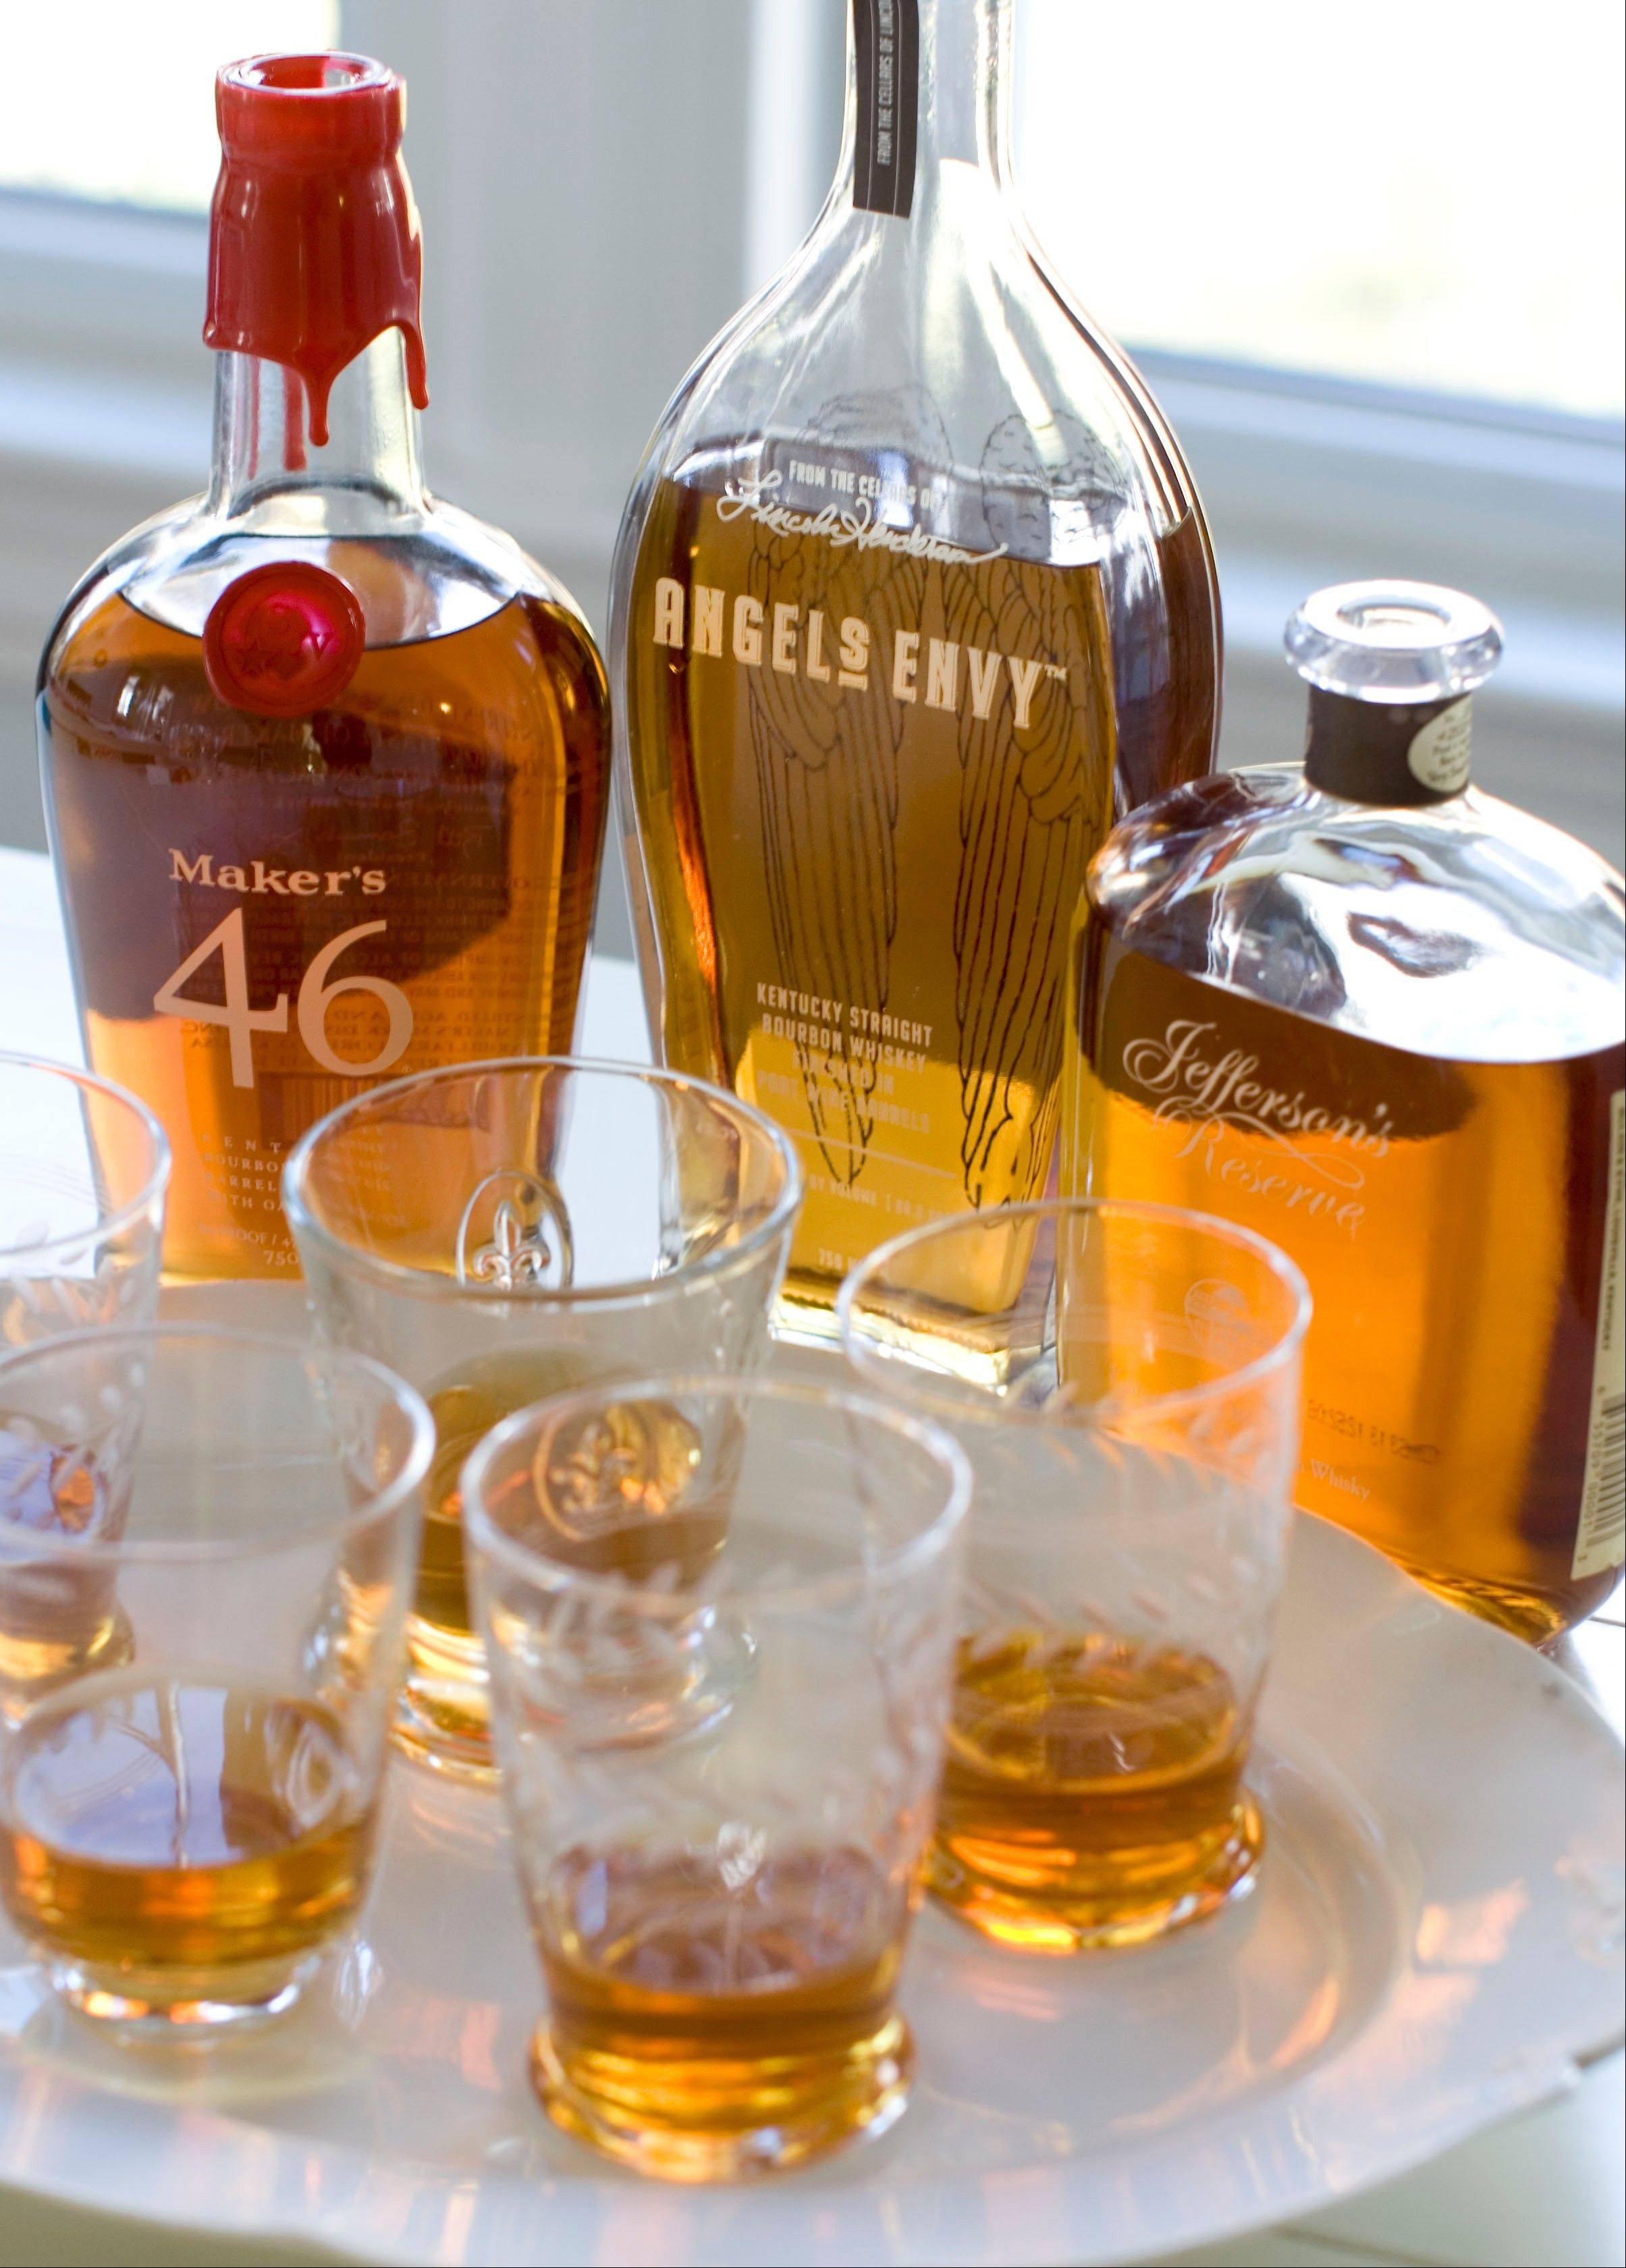 Bourbon mixes it up: New styles, flavors, brands